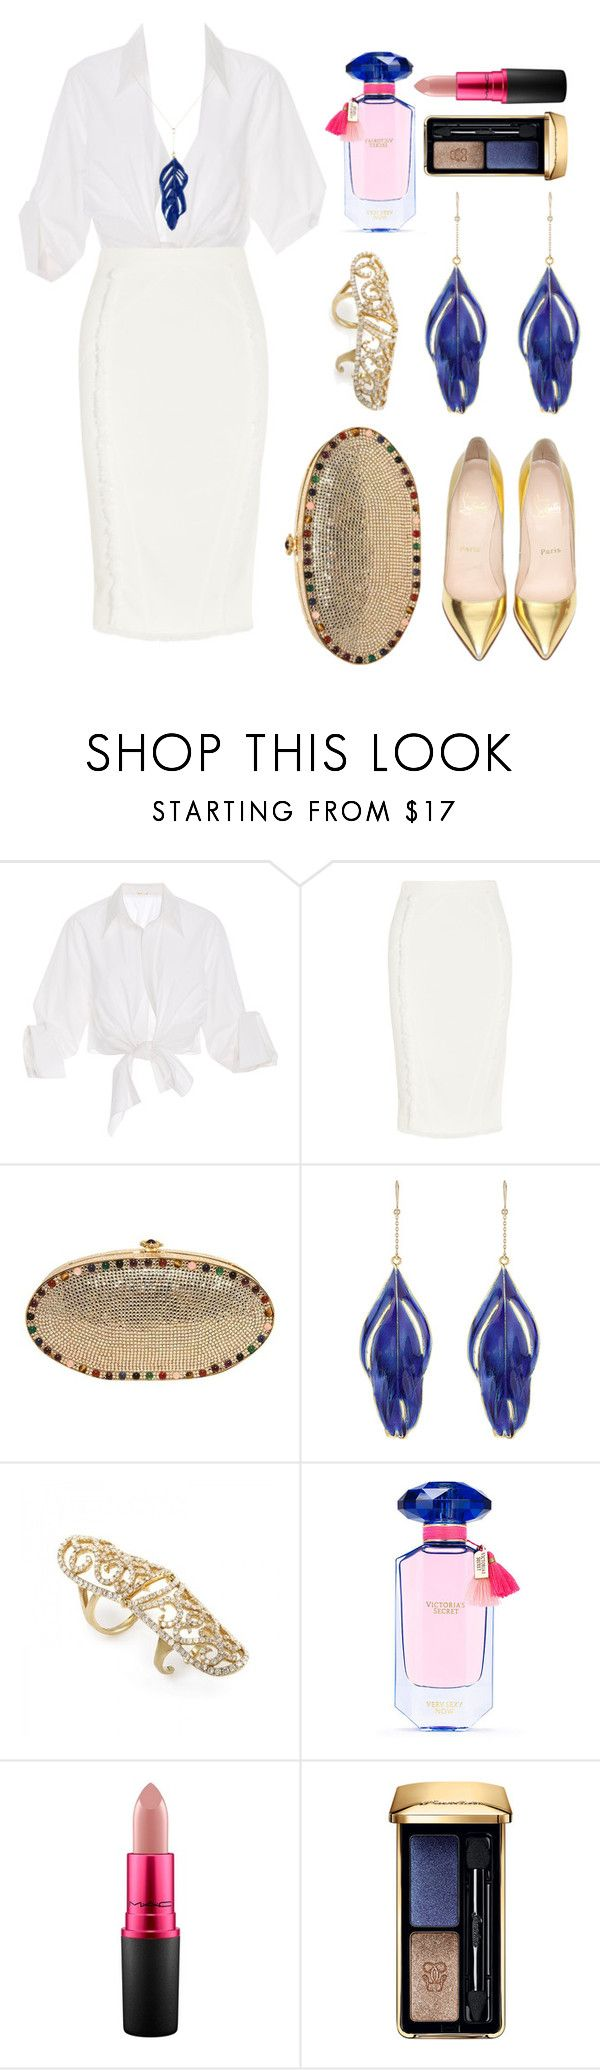 """Untitled #179"" by ivanov1234491 ❤ liked on Polyvore featuring Johanna Ortiz, Altuzarra, Christian Louboutin, Judith Leiber, Aurélie Bidermann, Victoria's Secret, MAC Cosmetics and Guerlain"